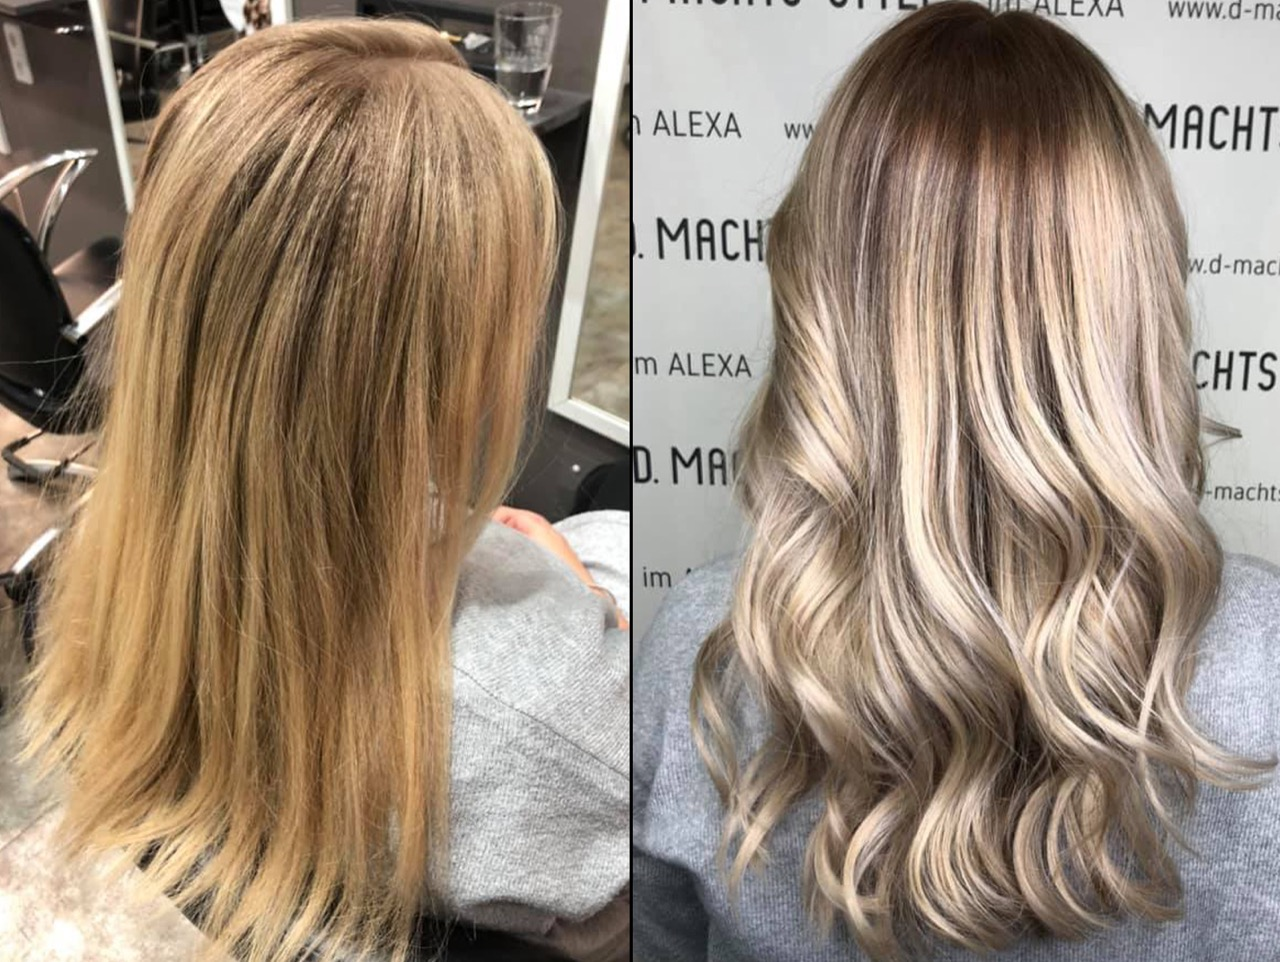 Haare Farben Trends Gallery Of Stunning Fall Hair Color Ideas